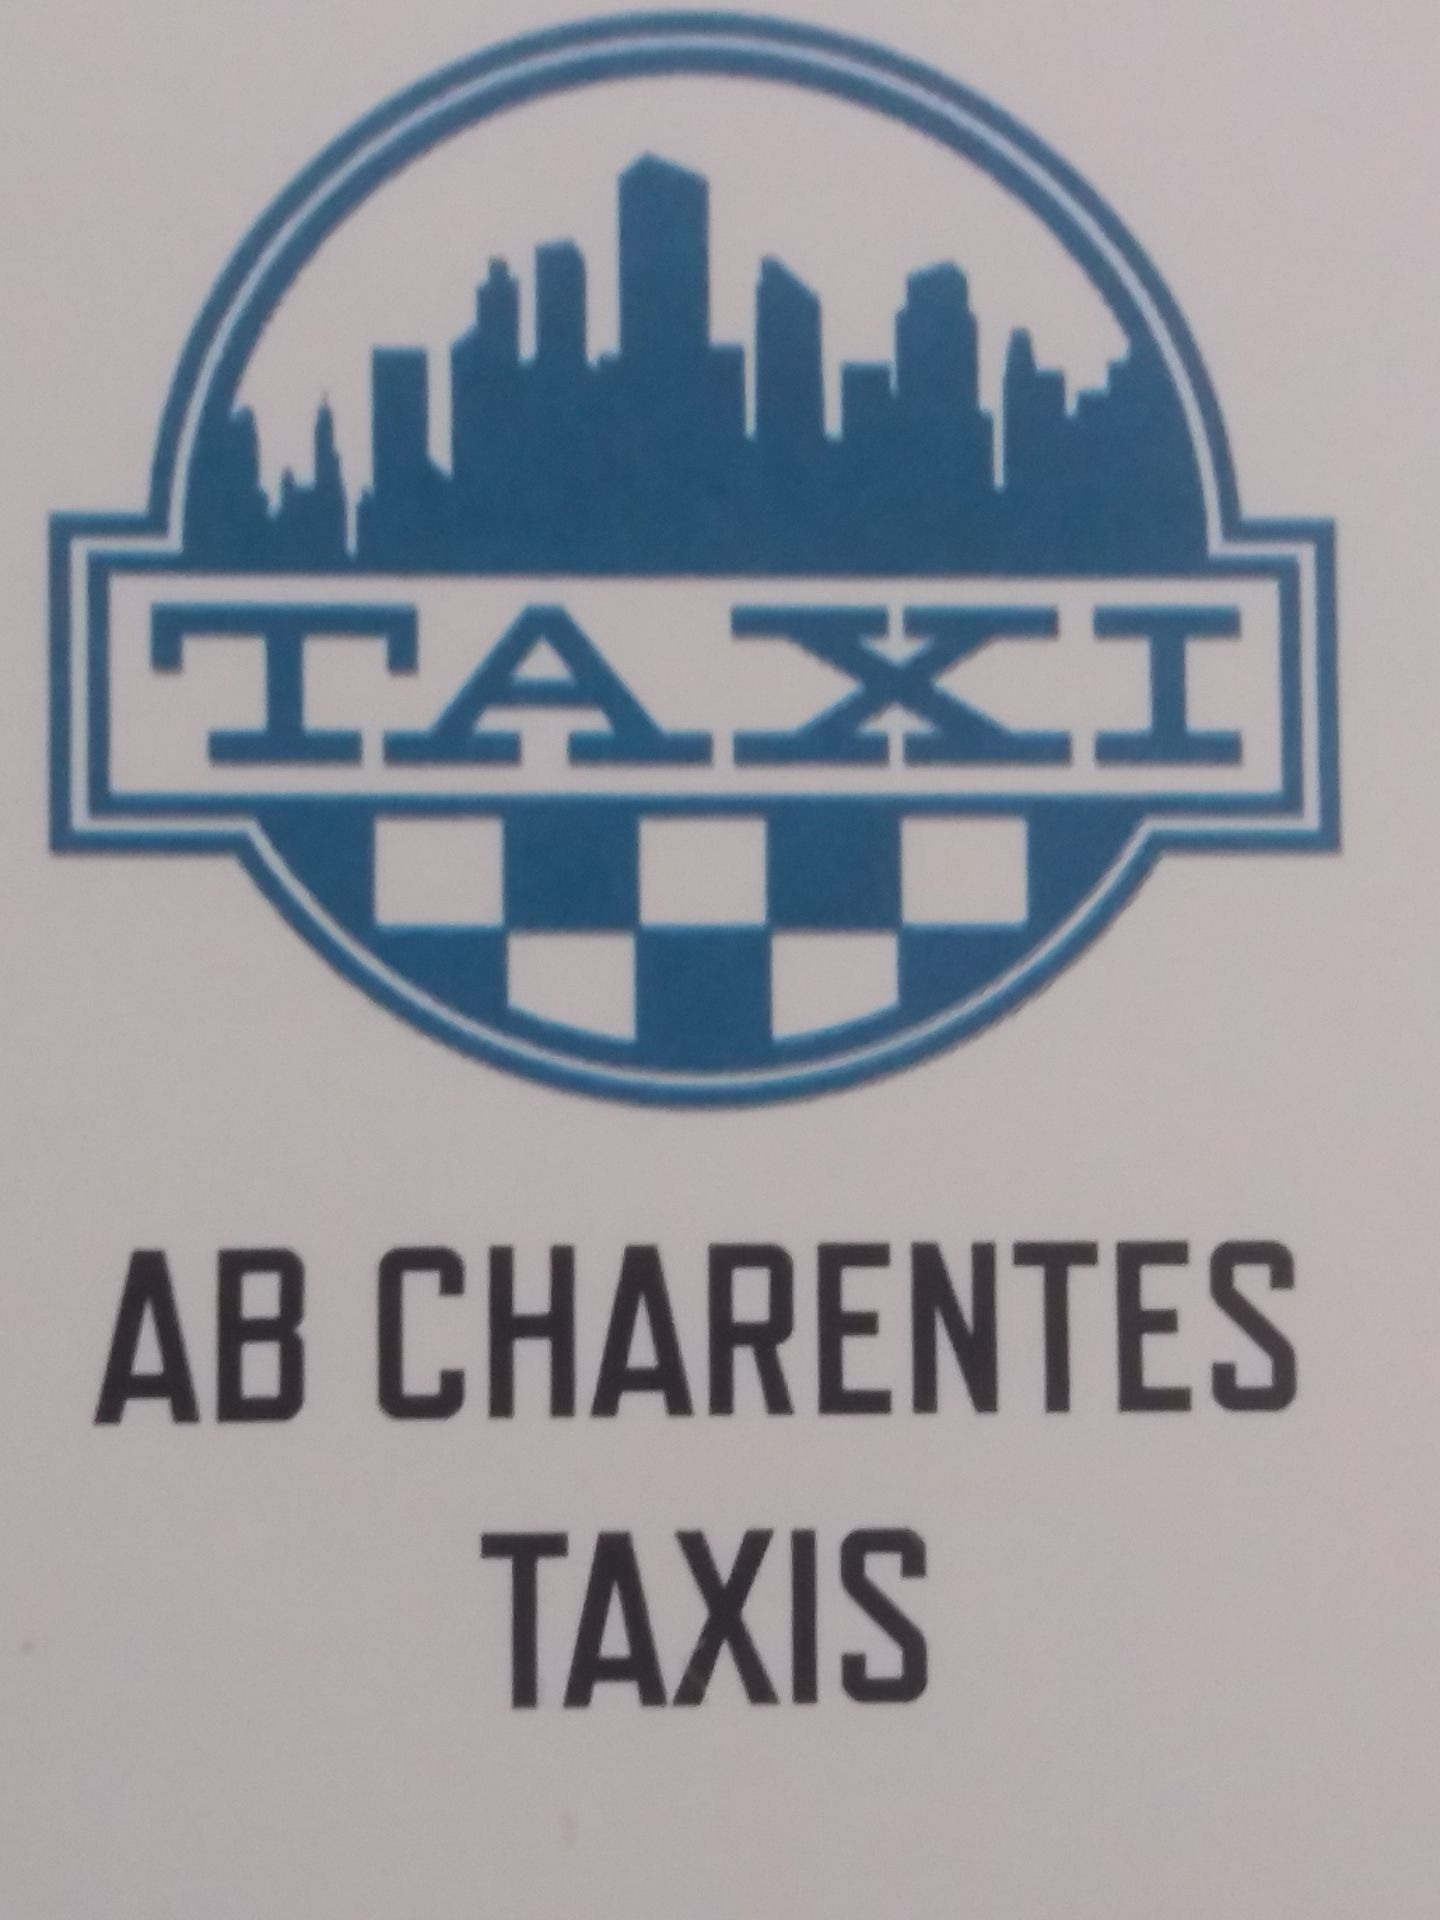 AB Charentes Taxis taxi